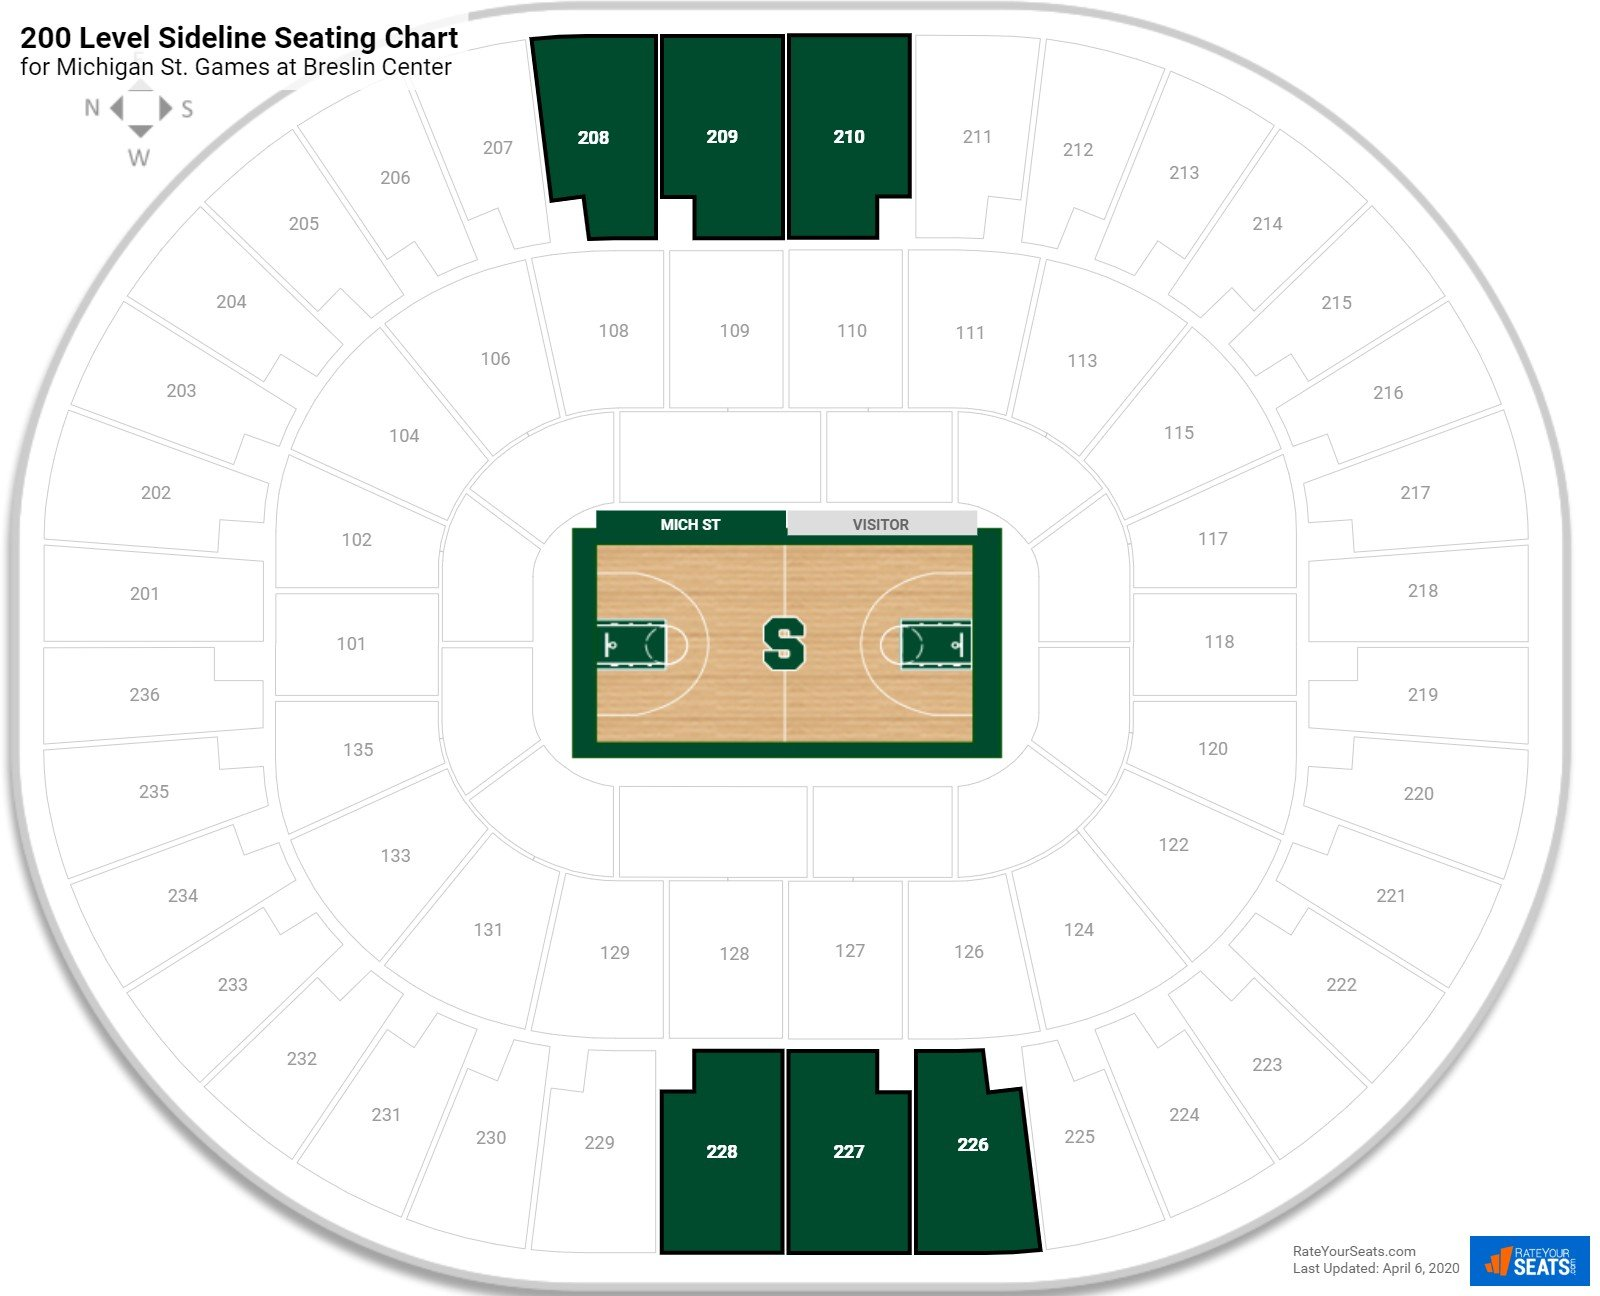 Breslin Center 200 Level Sideline Seating Chart